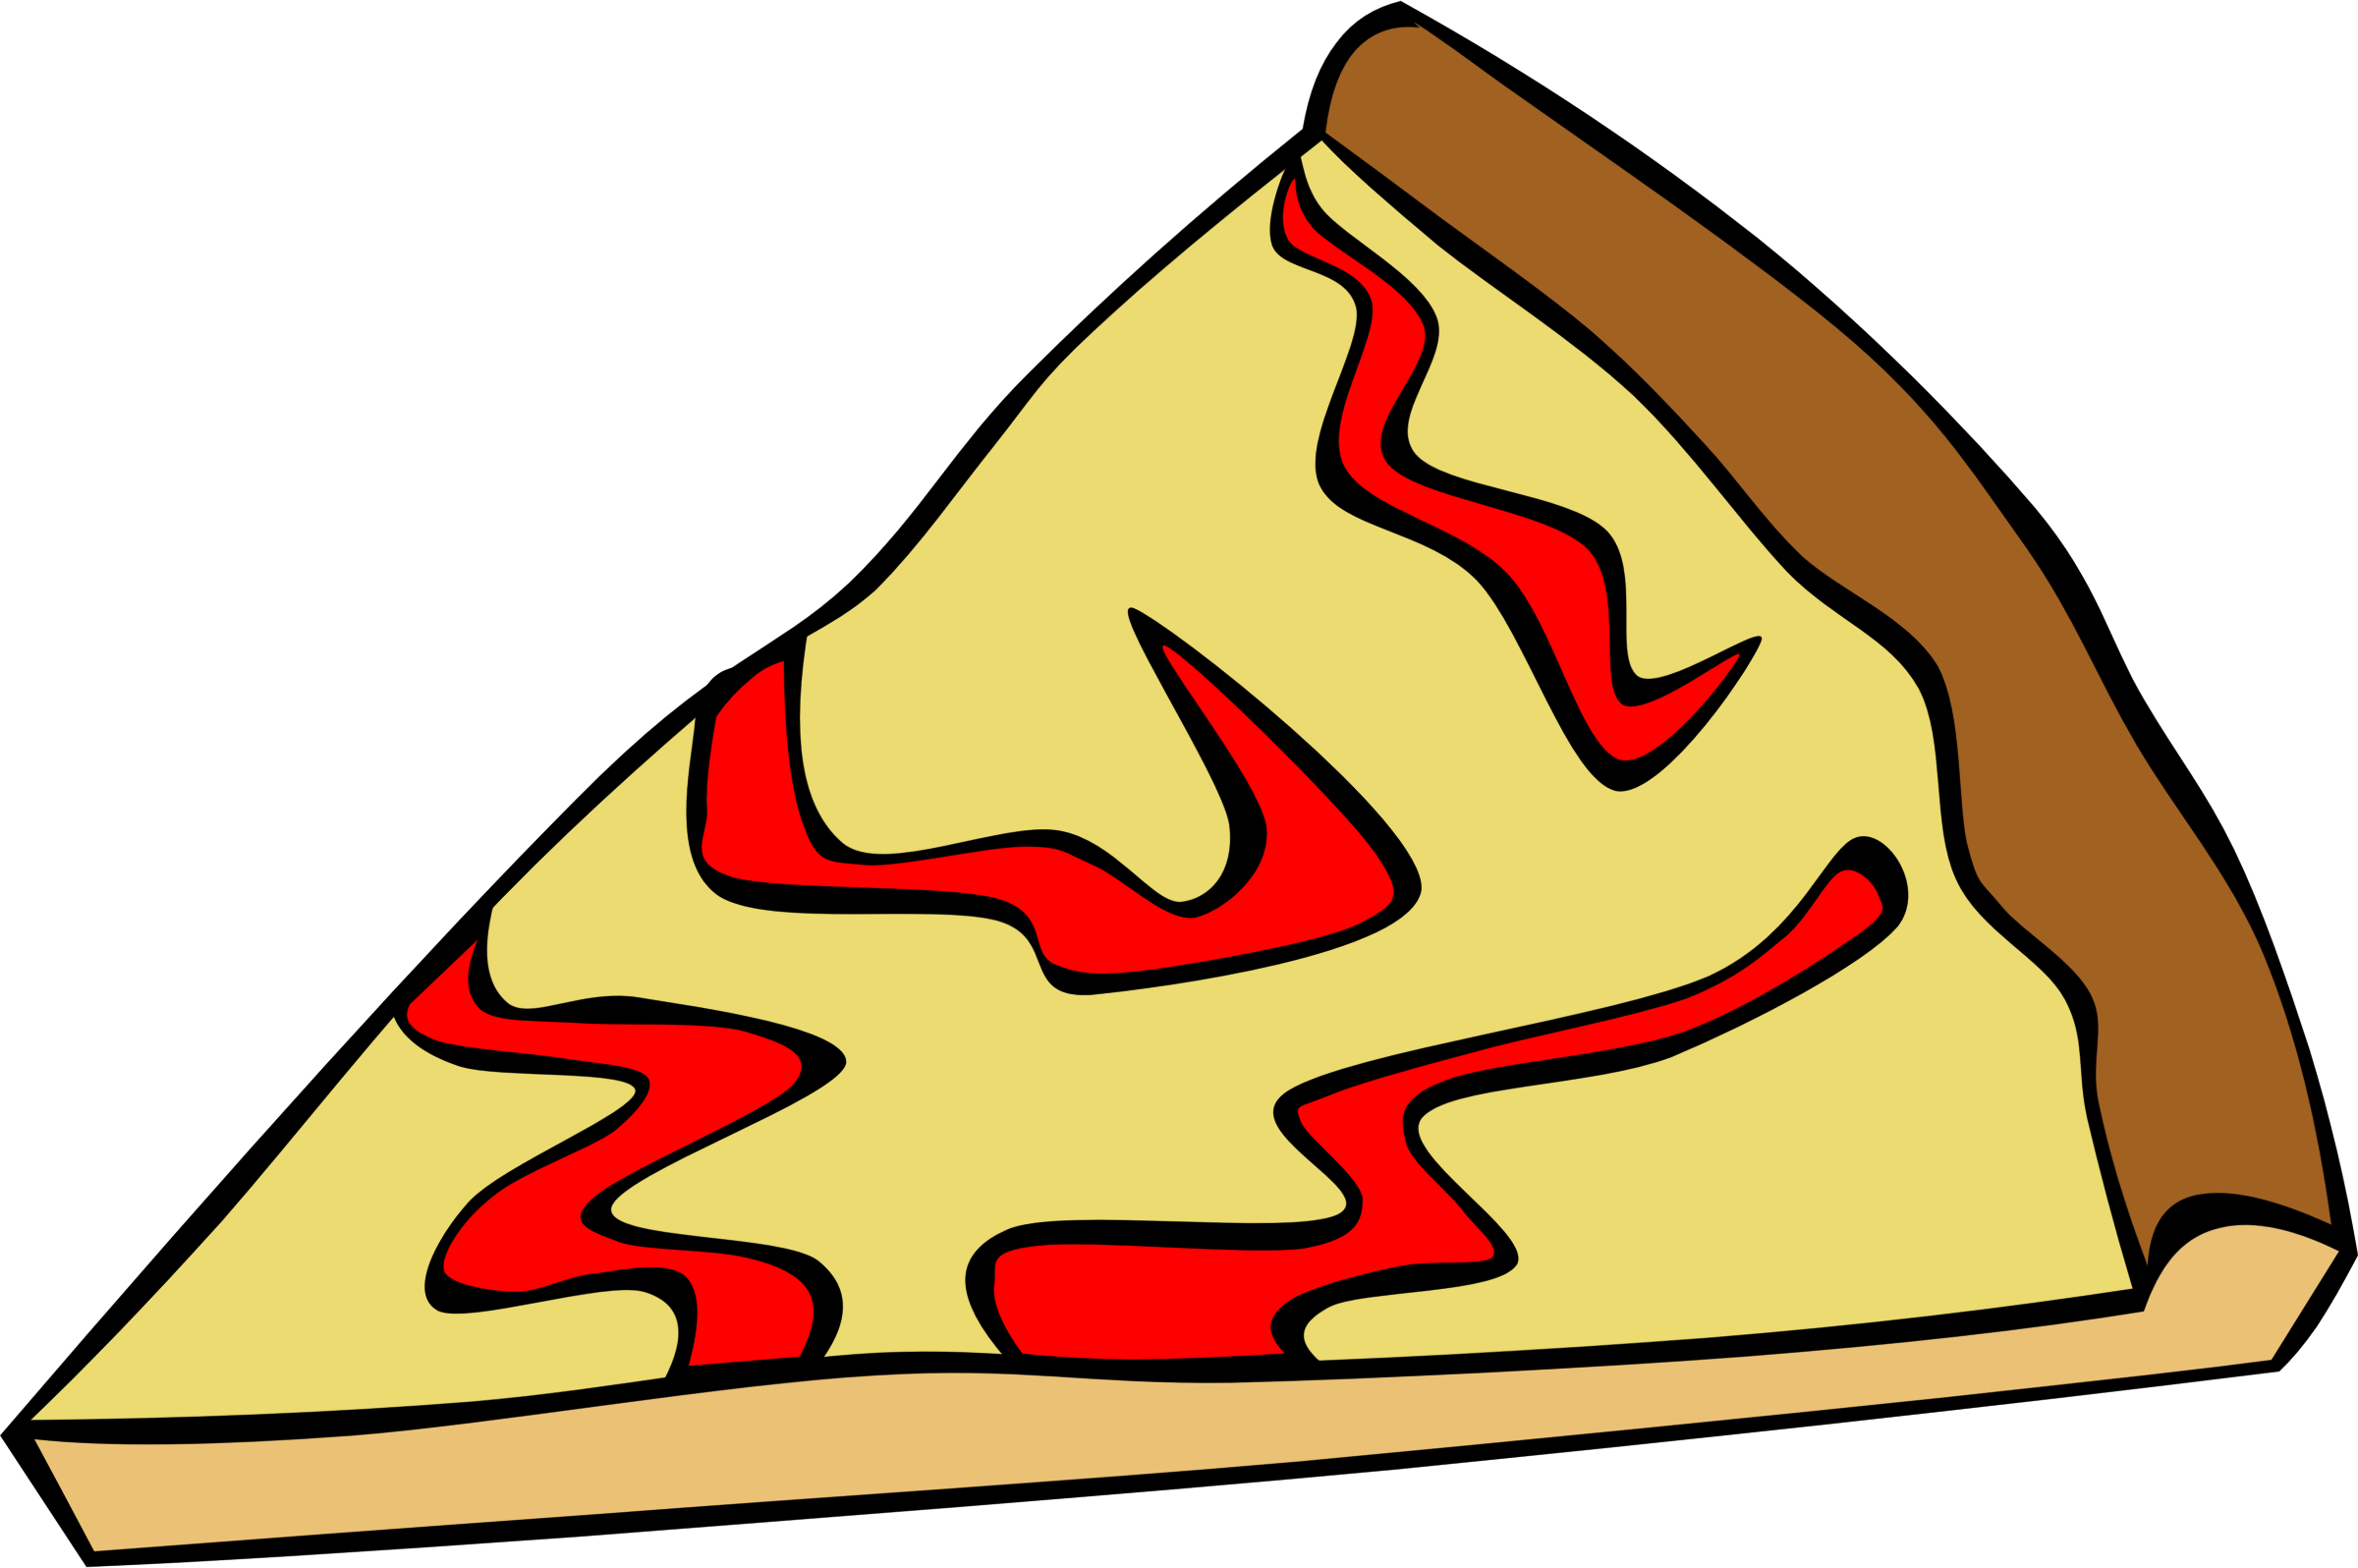 Fast food snack pizza. Dinner clipart animated